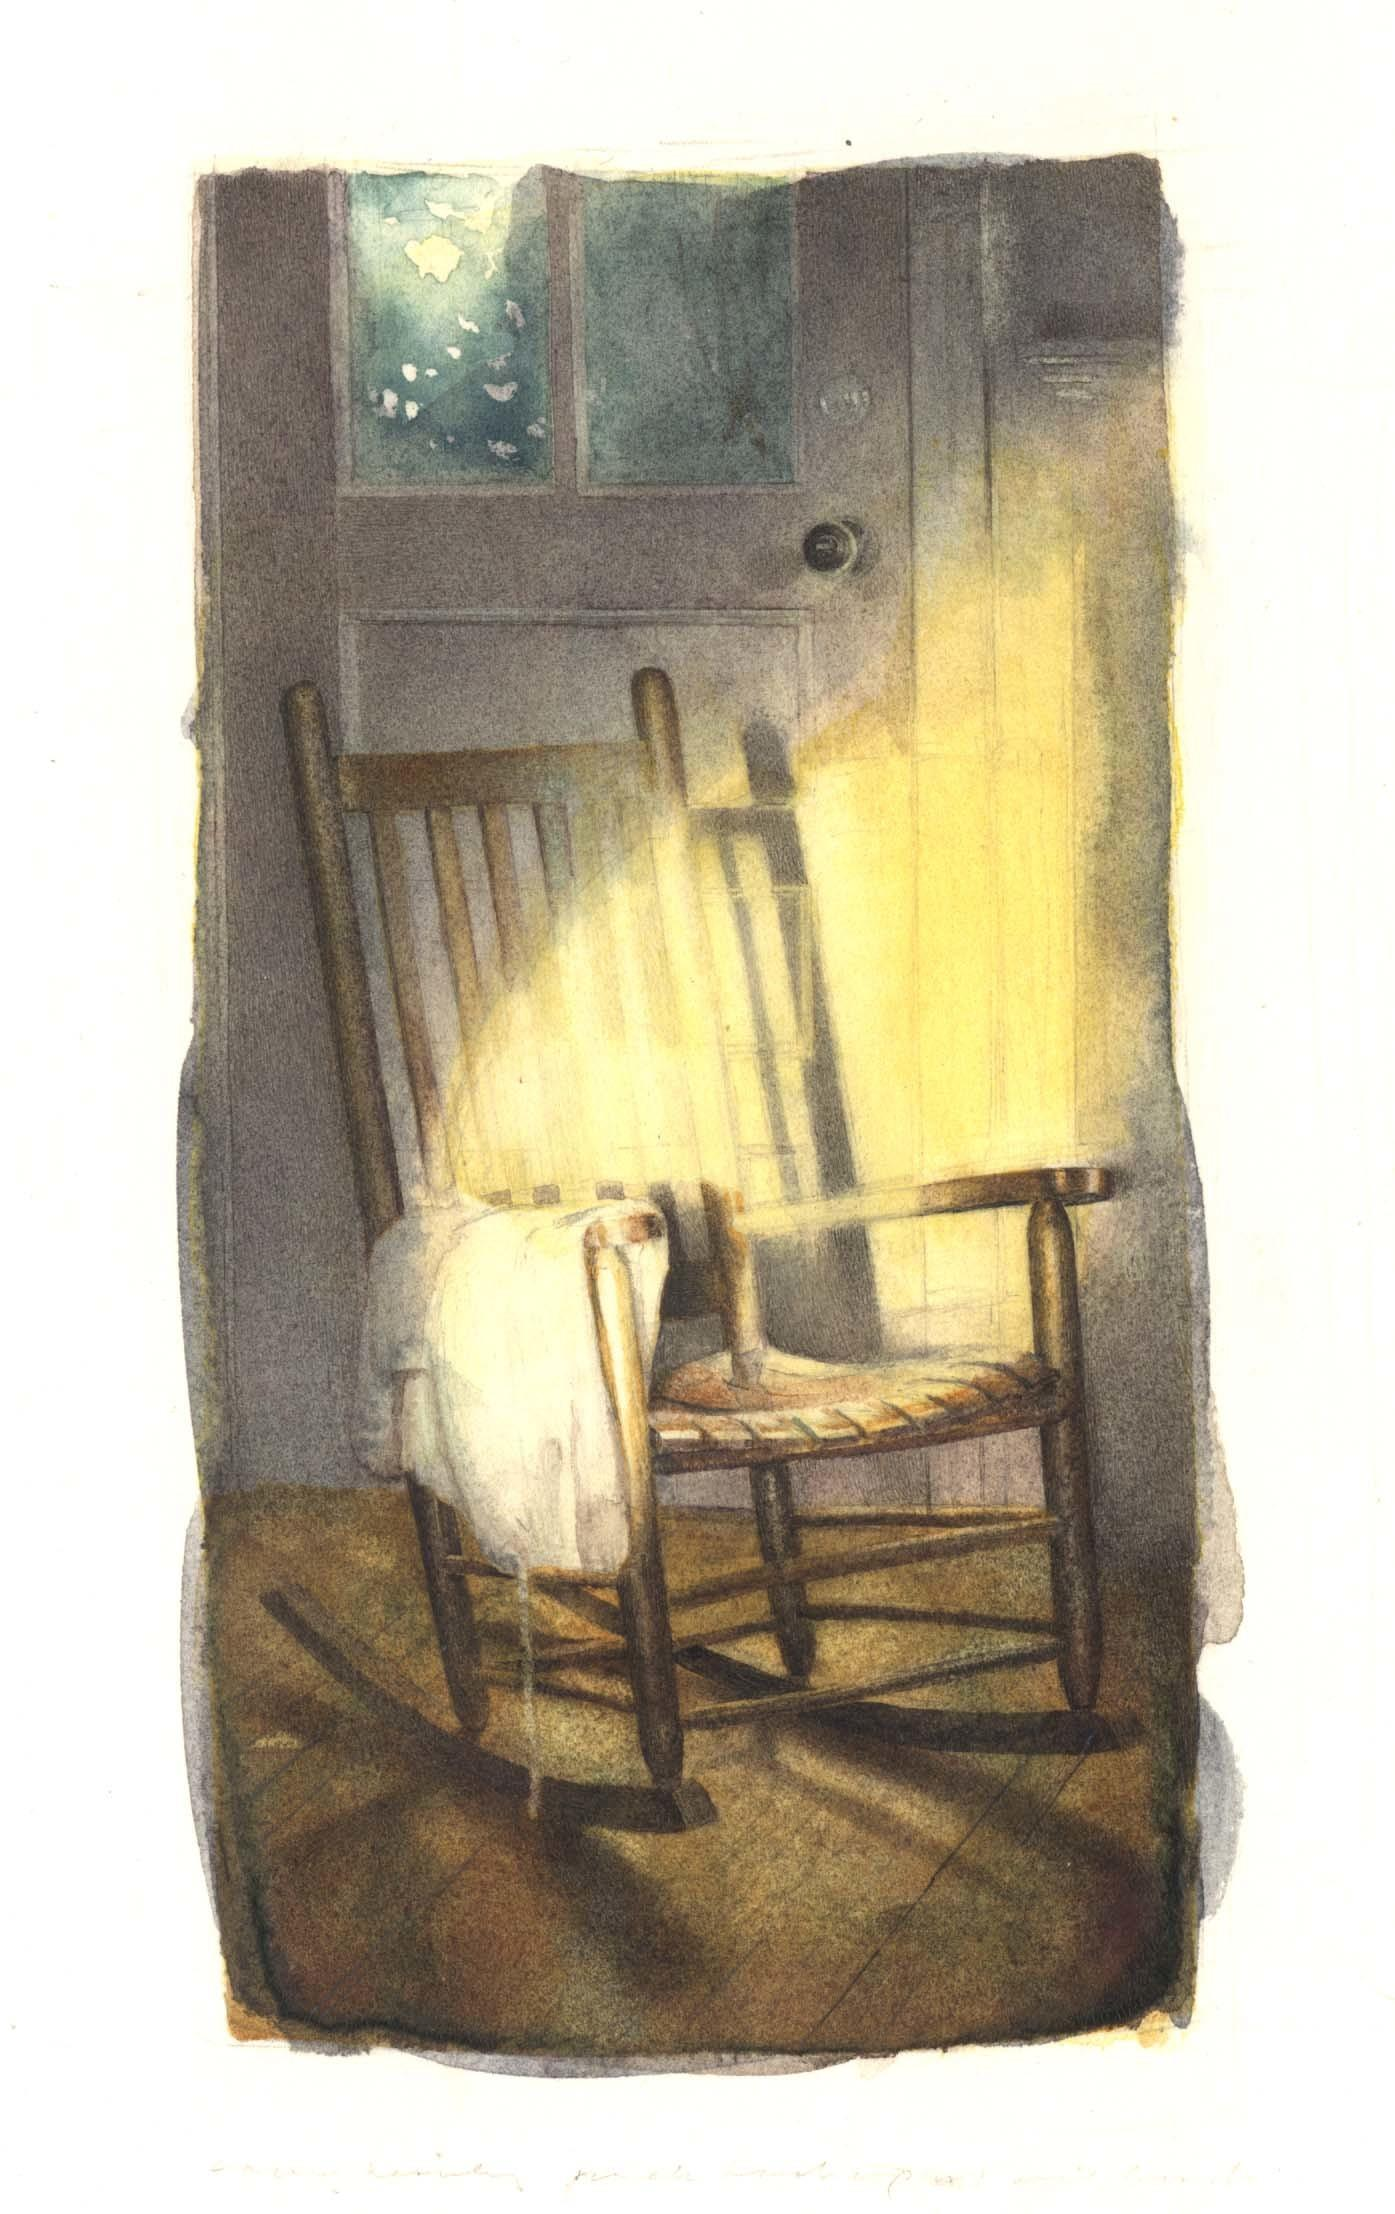 Rocking Chair in Sunlight image